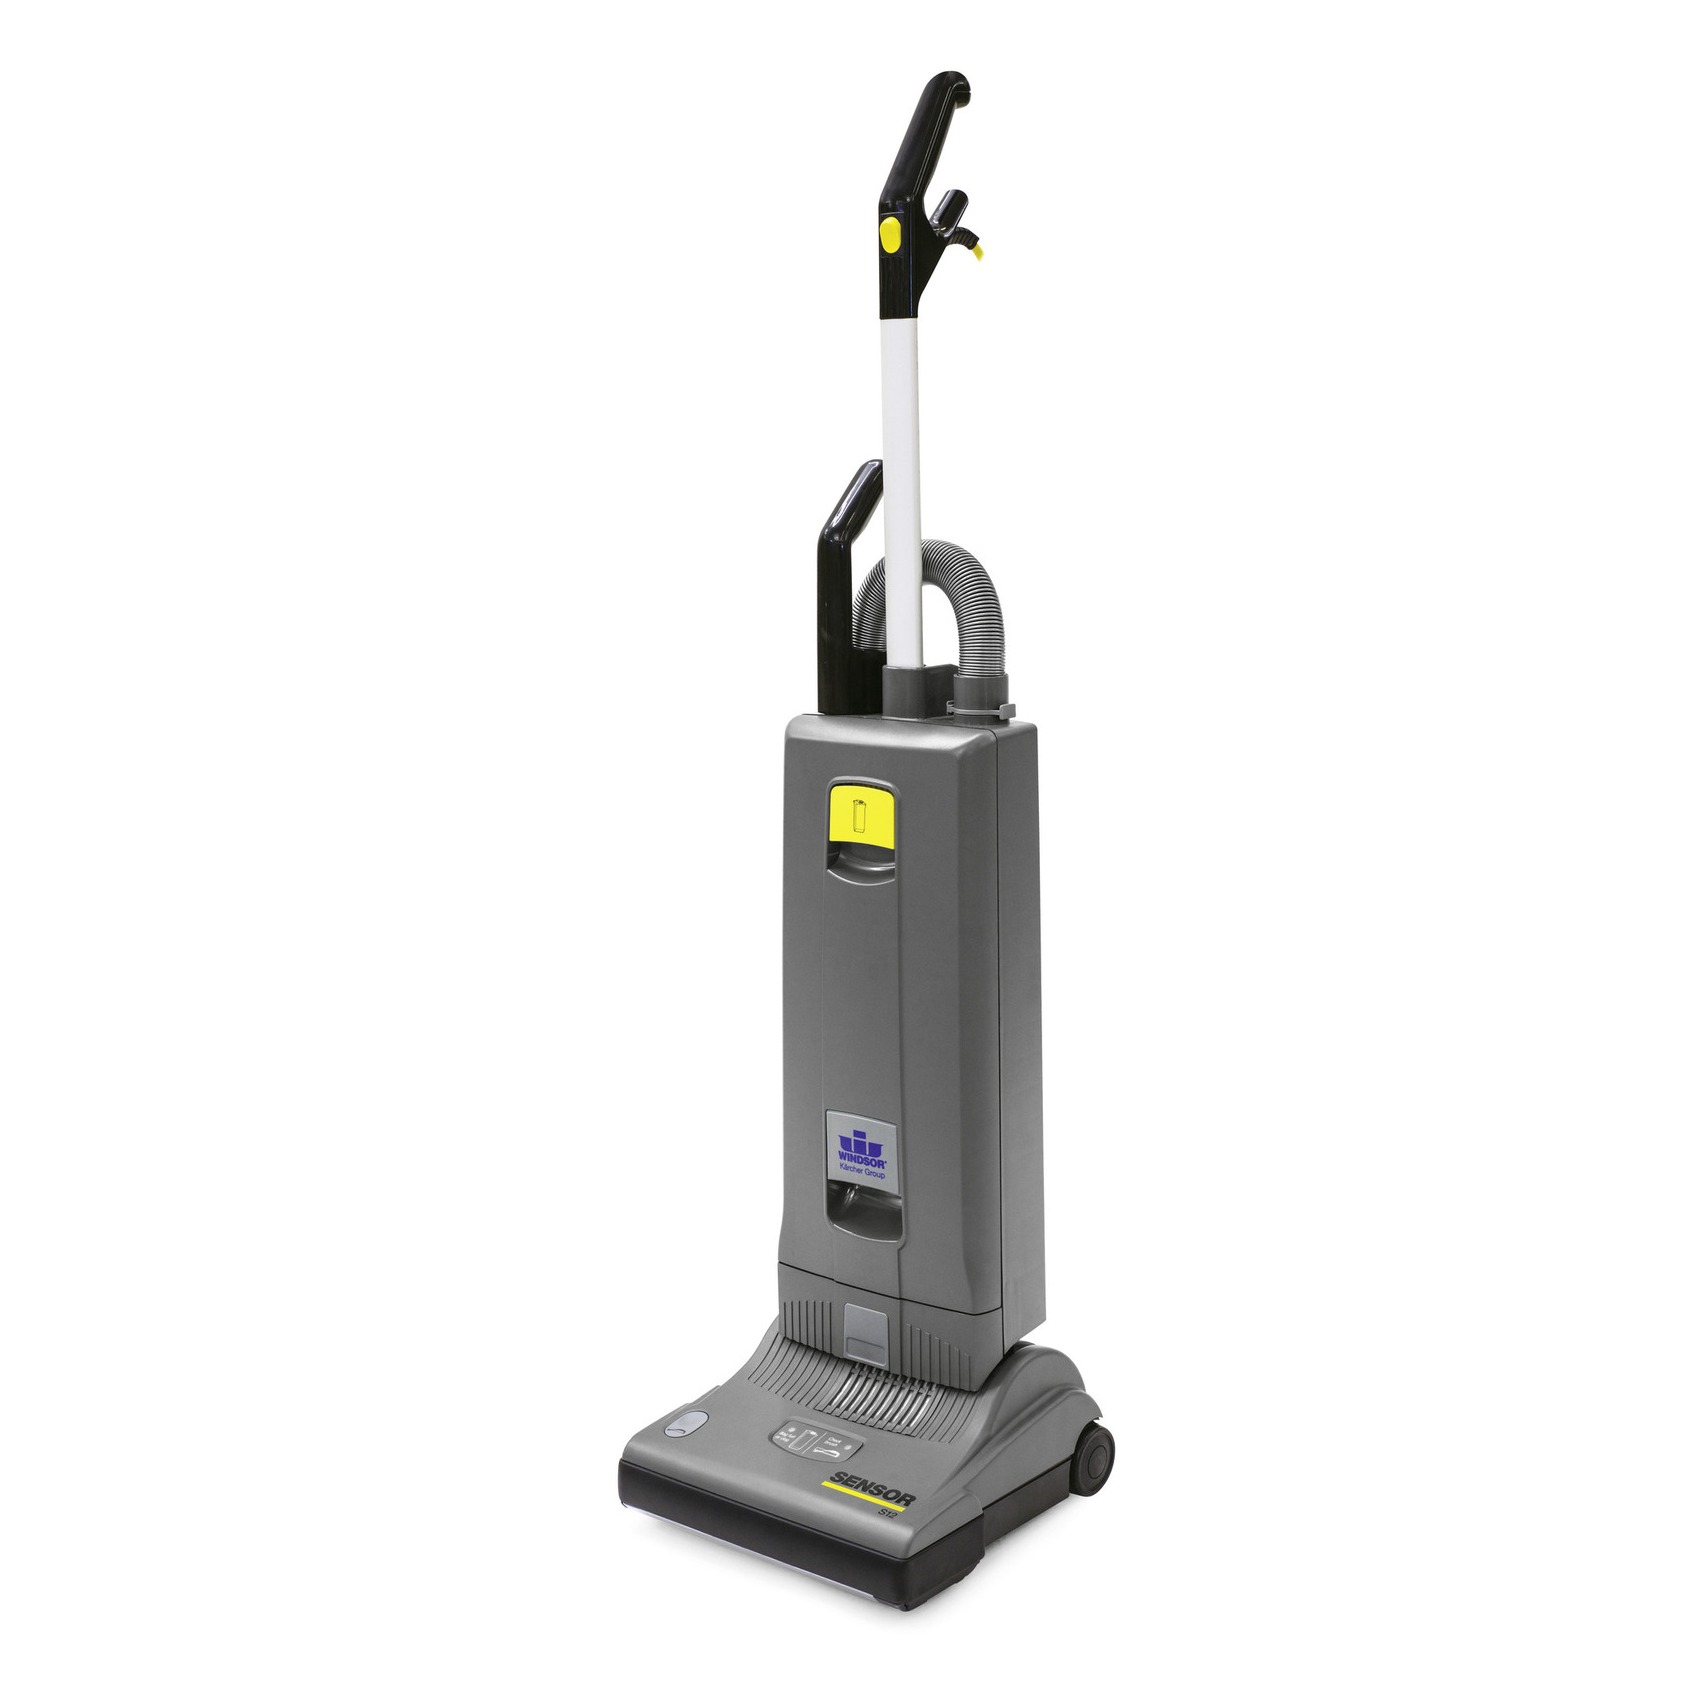 https://www.speedyvacuum.ca/public/uploads/products_photo/5e5e6ff839ae3.jpg